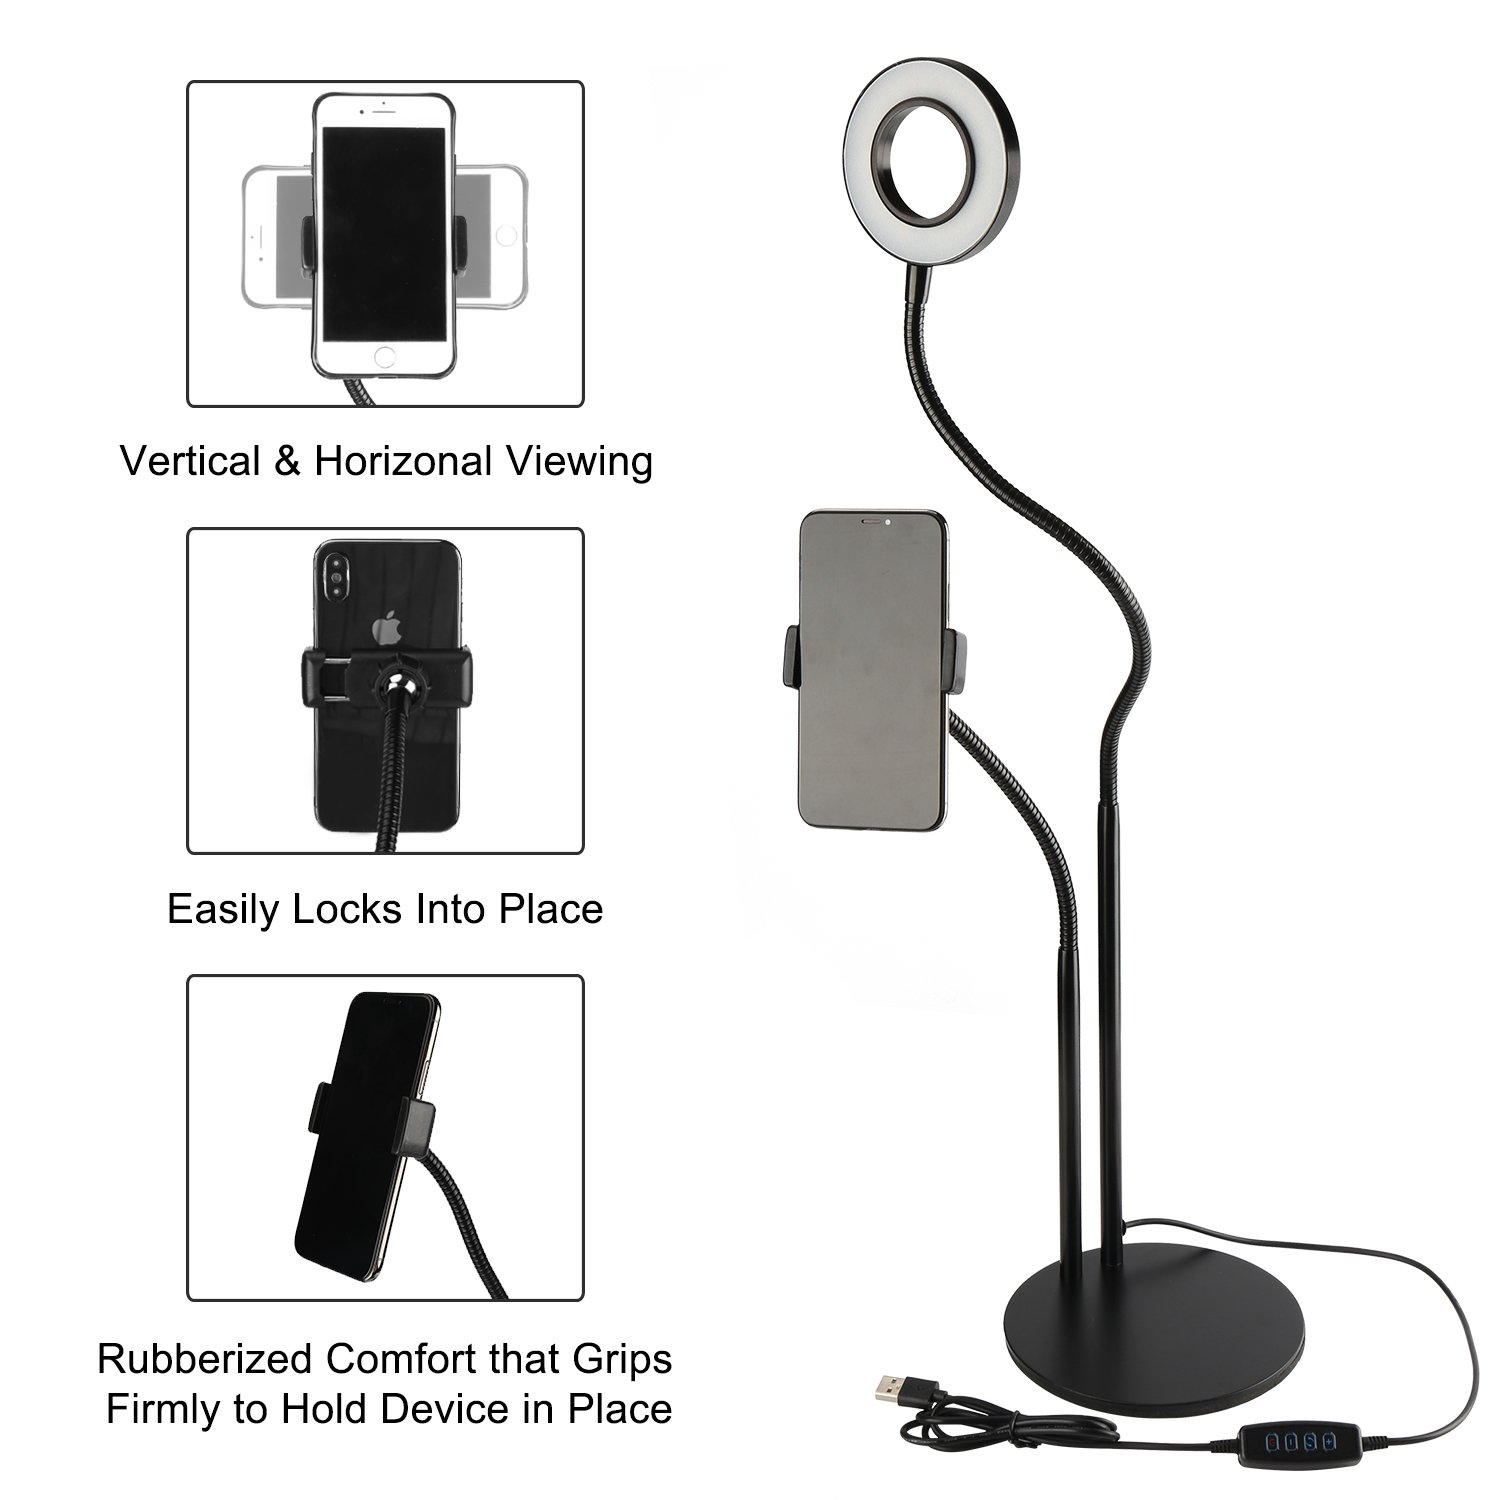 Selfie Ring Light with Cell Phone Holder Stand for Live Stream/Makeup, UBeesize Mini LED Camera Lighting with Flexible Arms Compatible with iPhone/Android by UBeesize (Image #4)